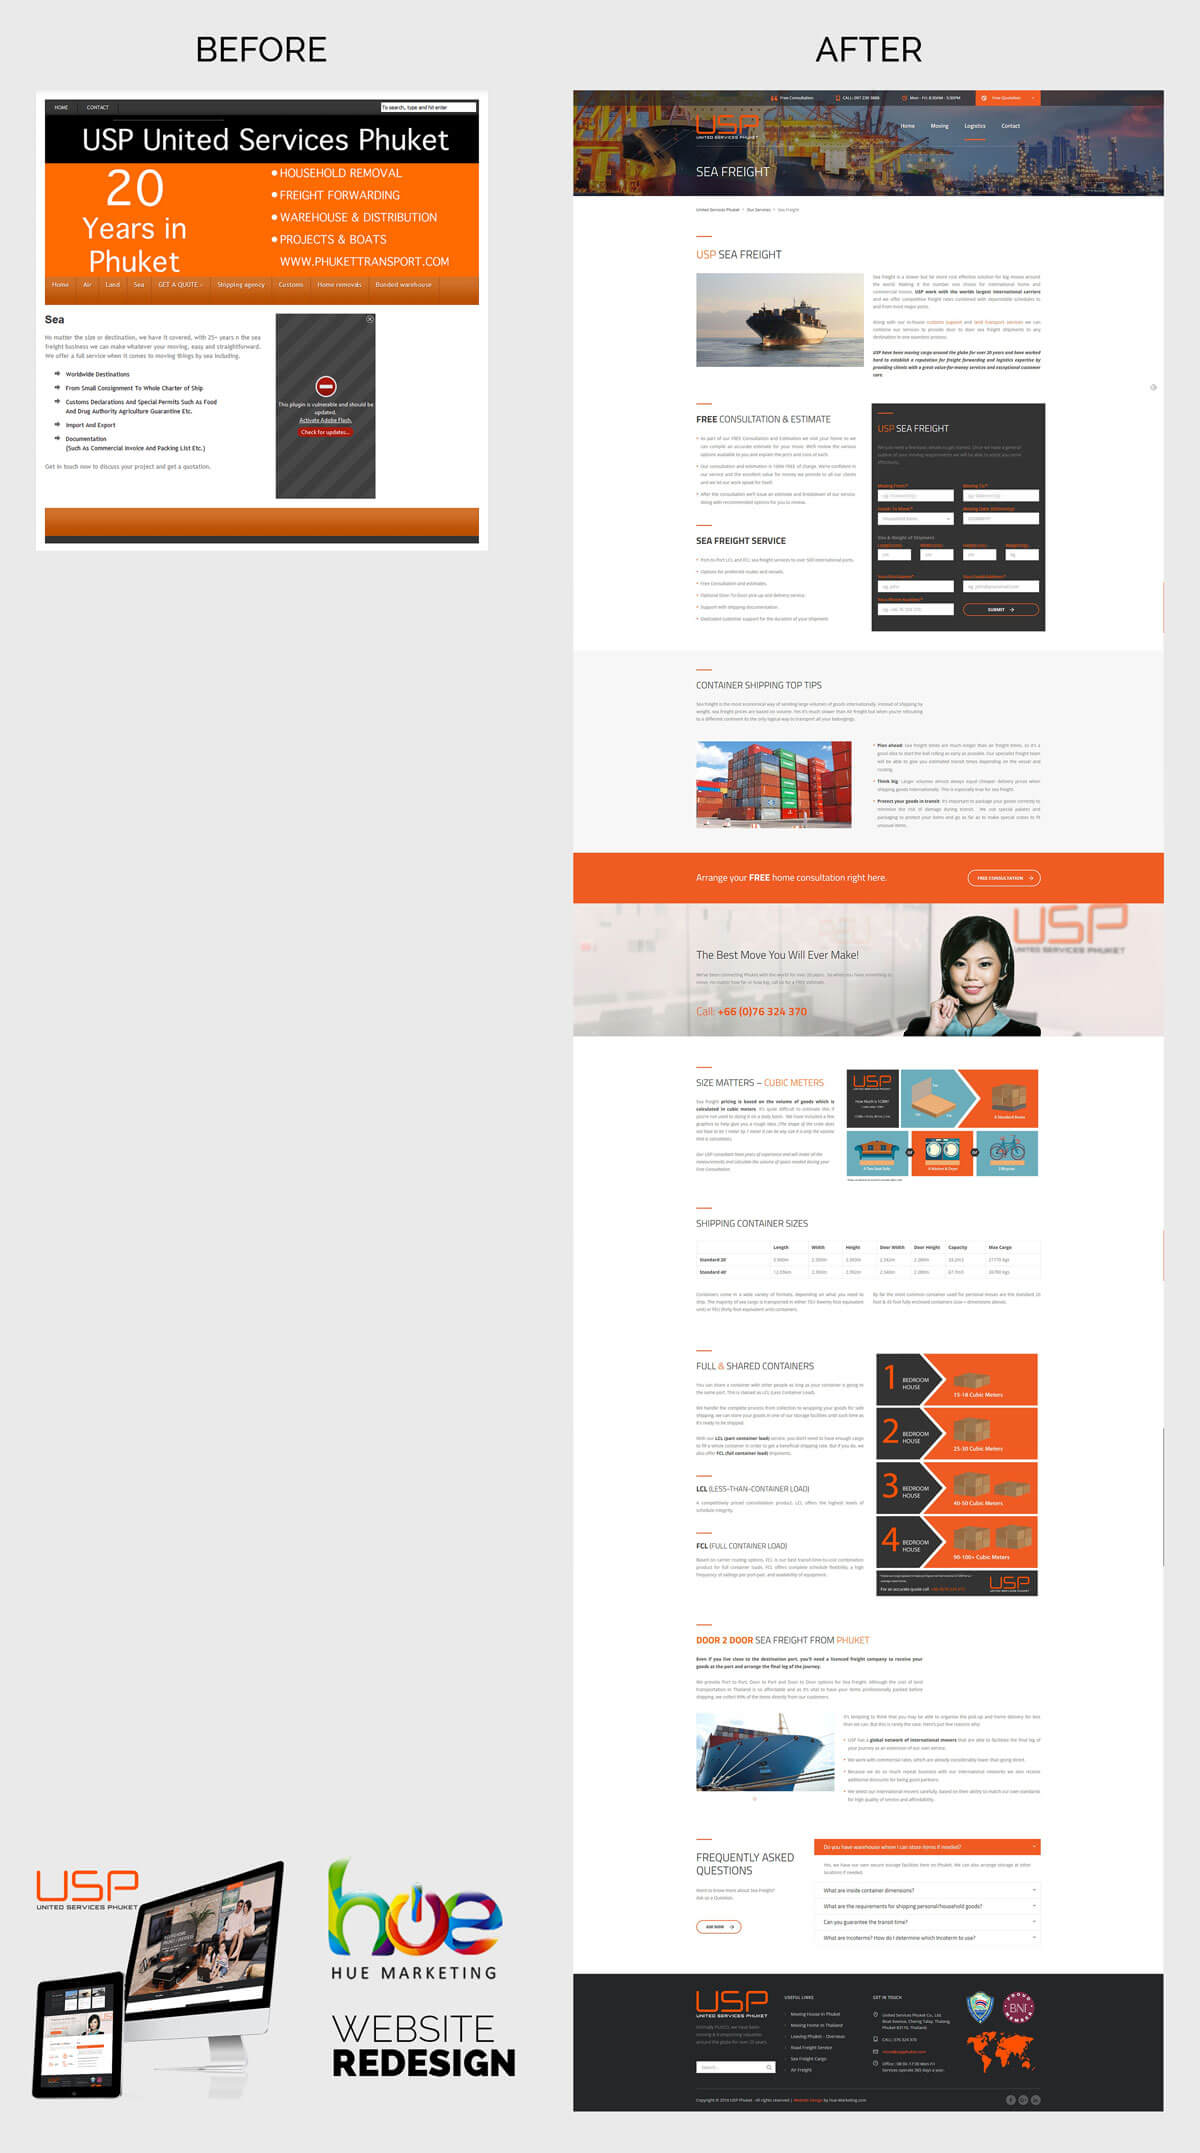 Phuket Website Redesign - Before and After